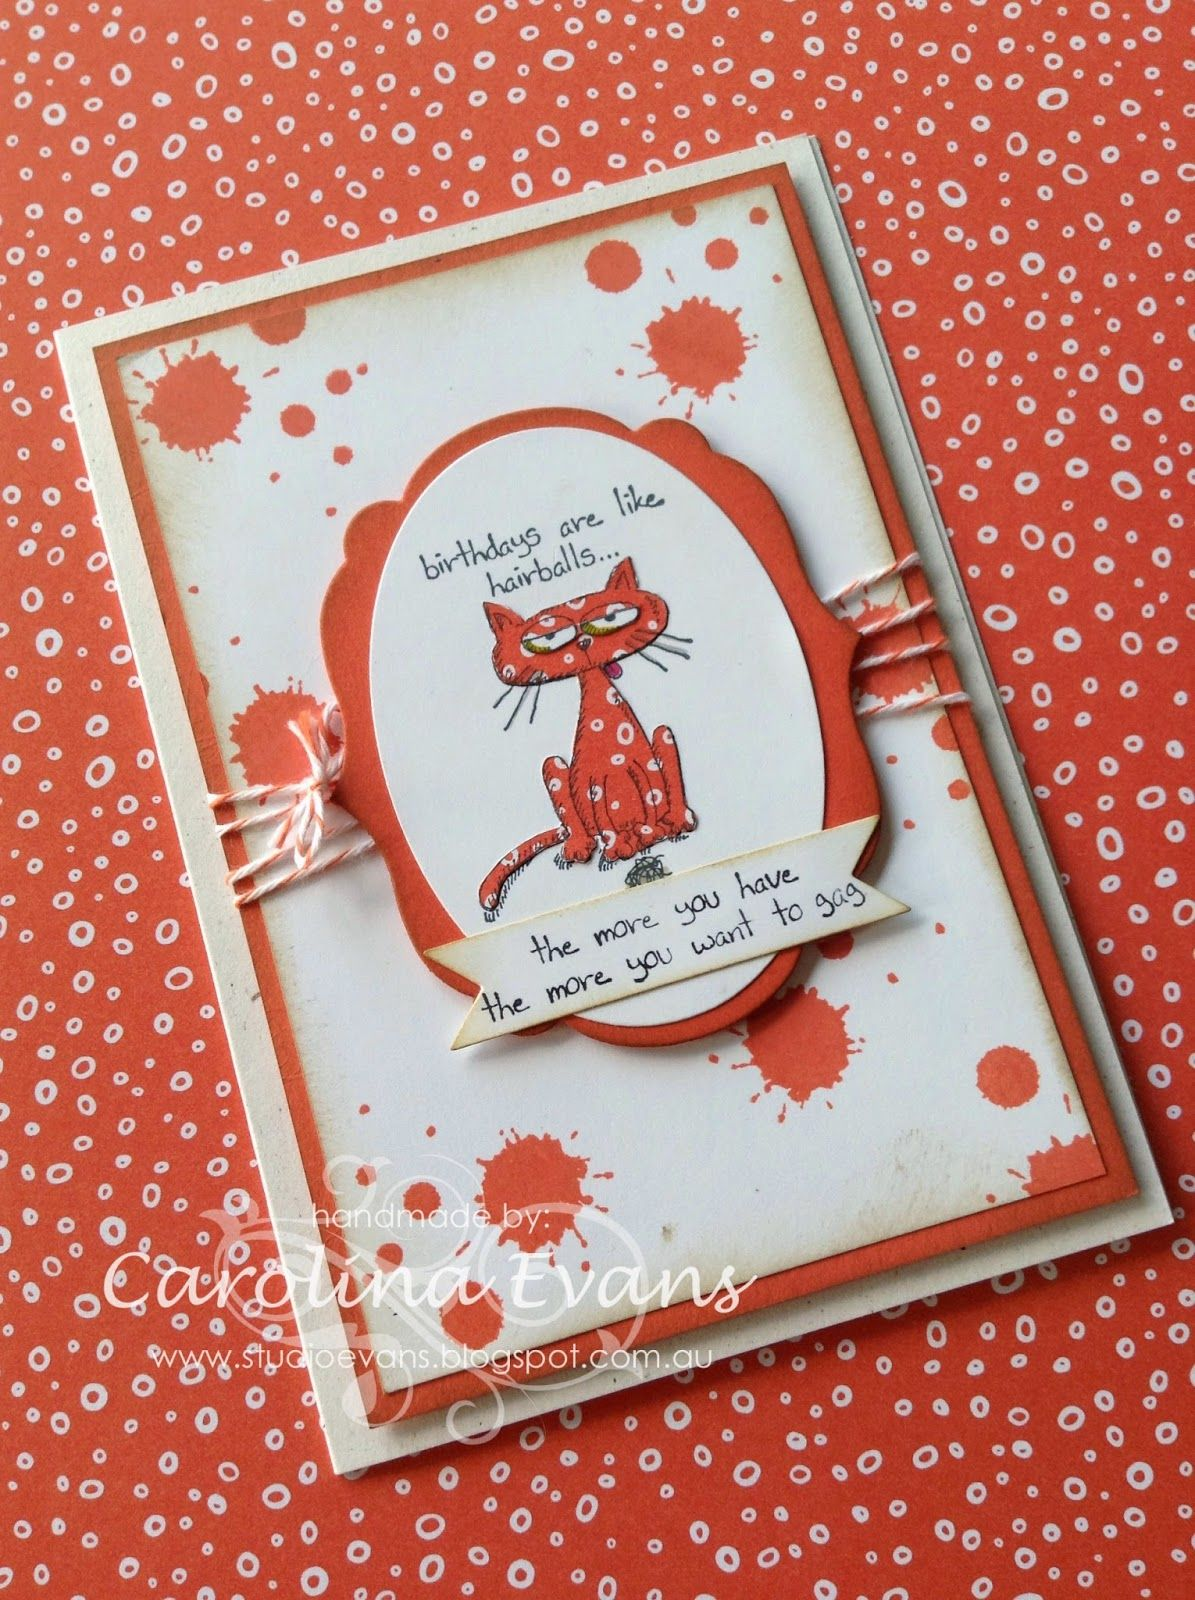 Giggle greetings stamped on patterned paper dsp greeting